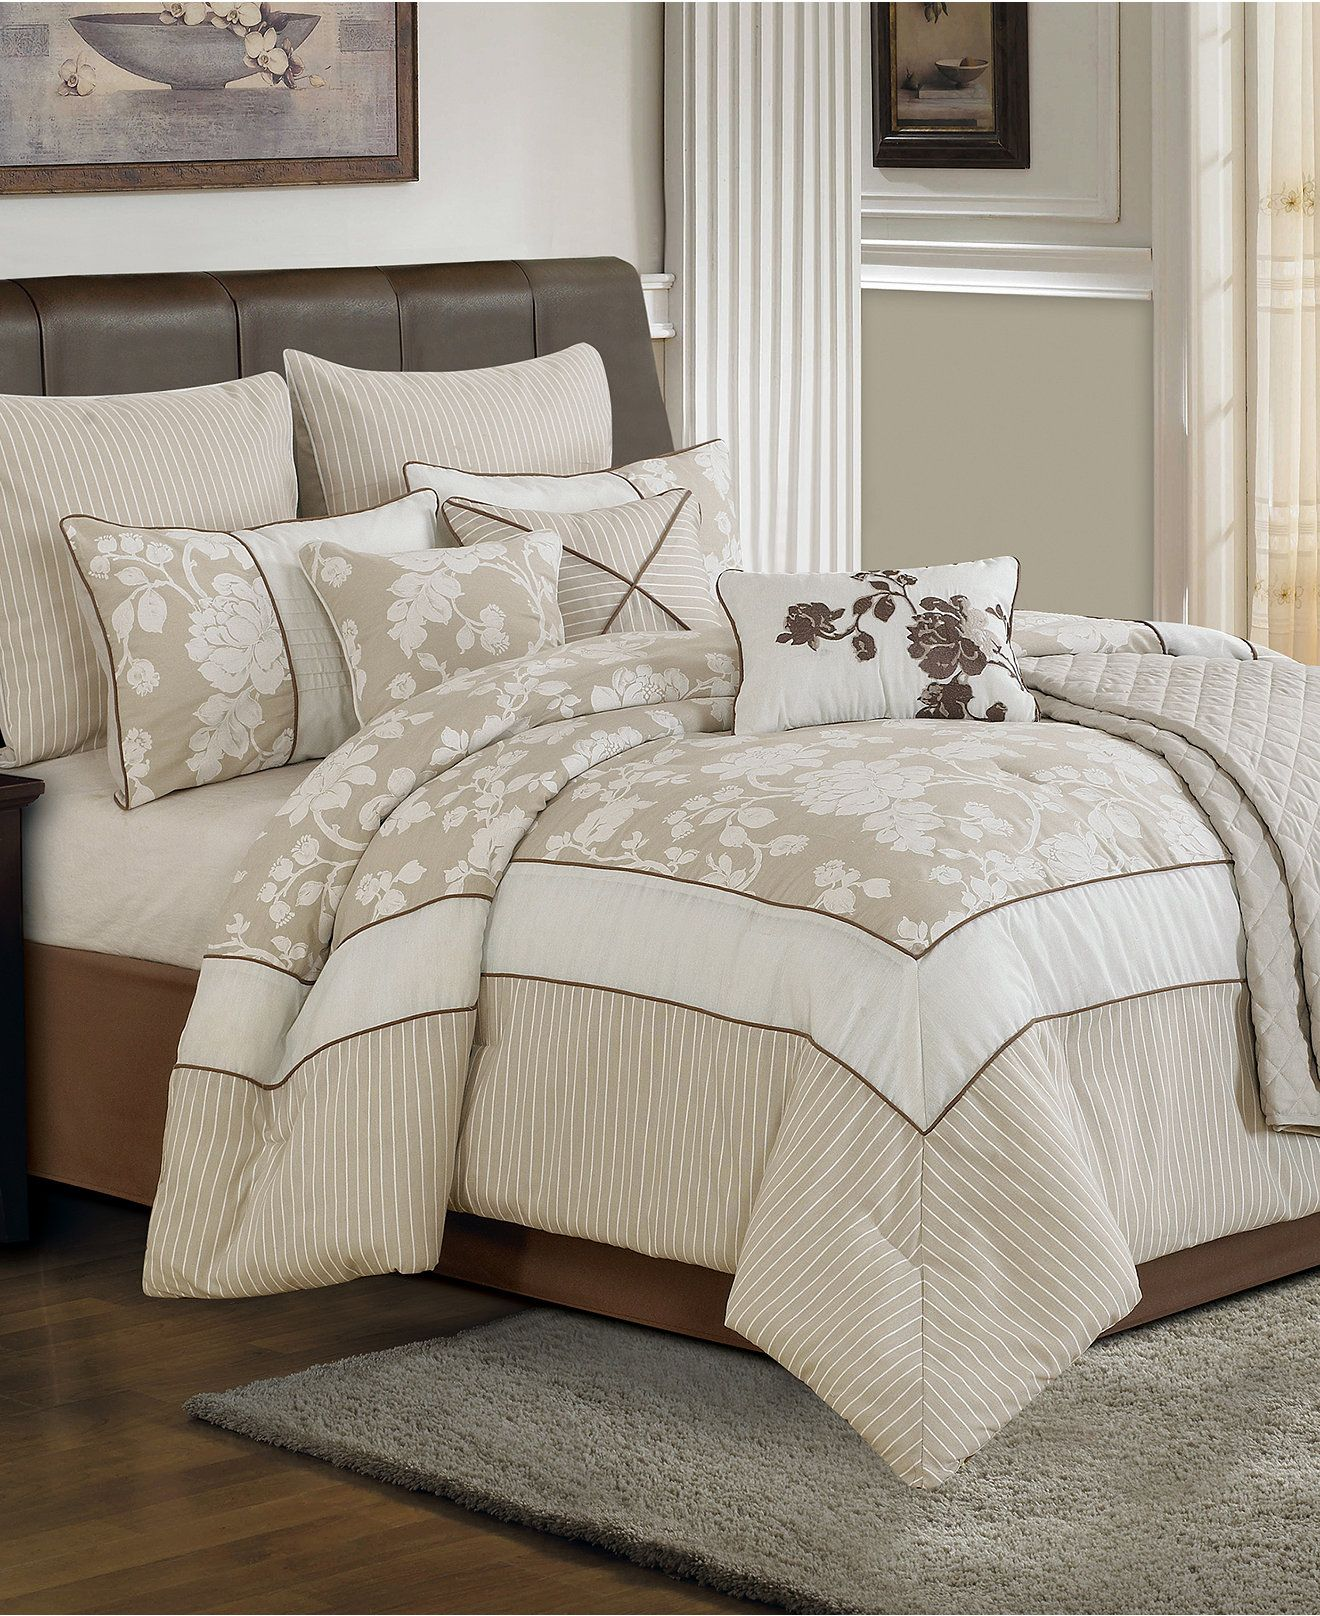 Cream Beige And Brown Color Scheme For Bedroom Lara 10